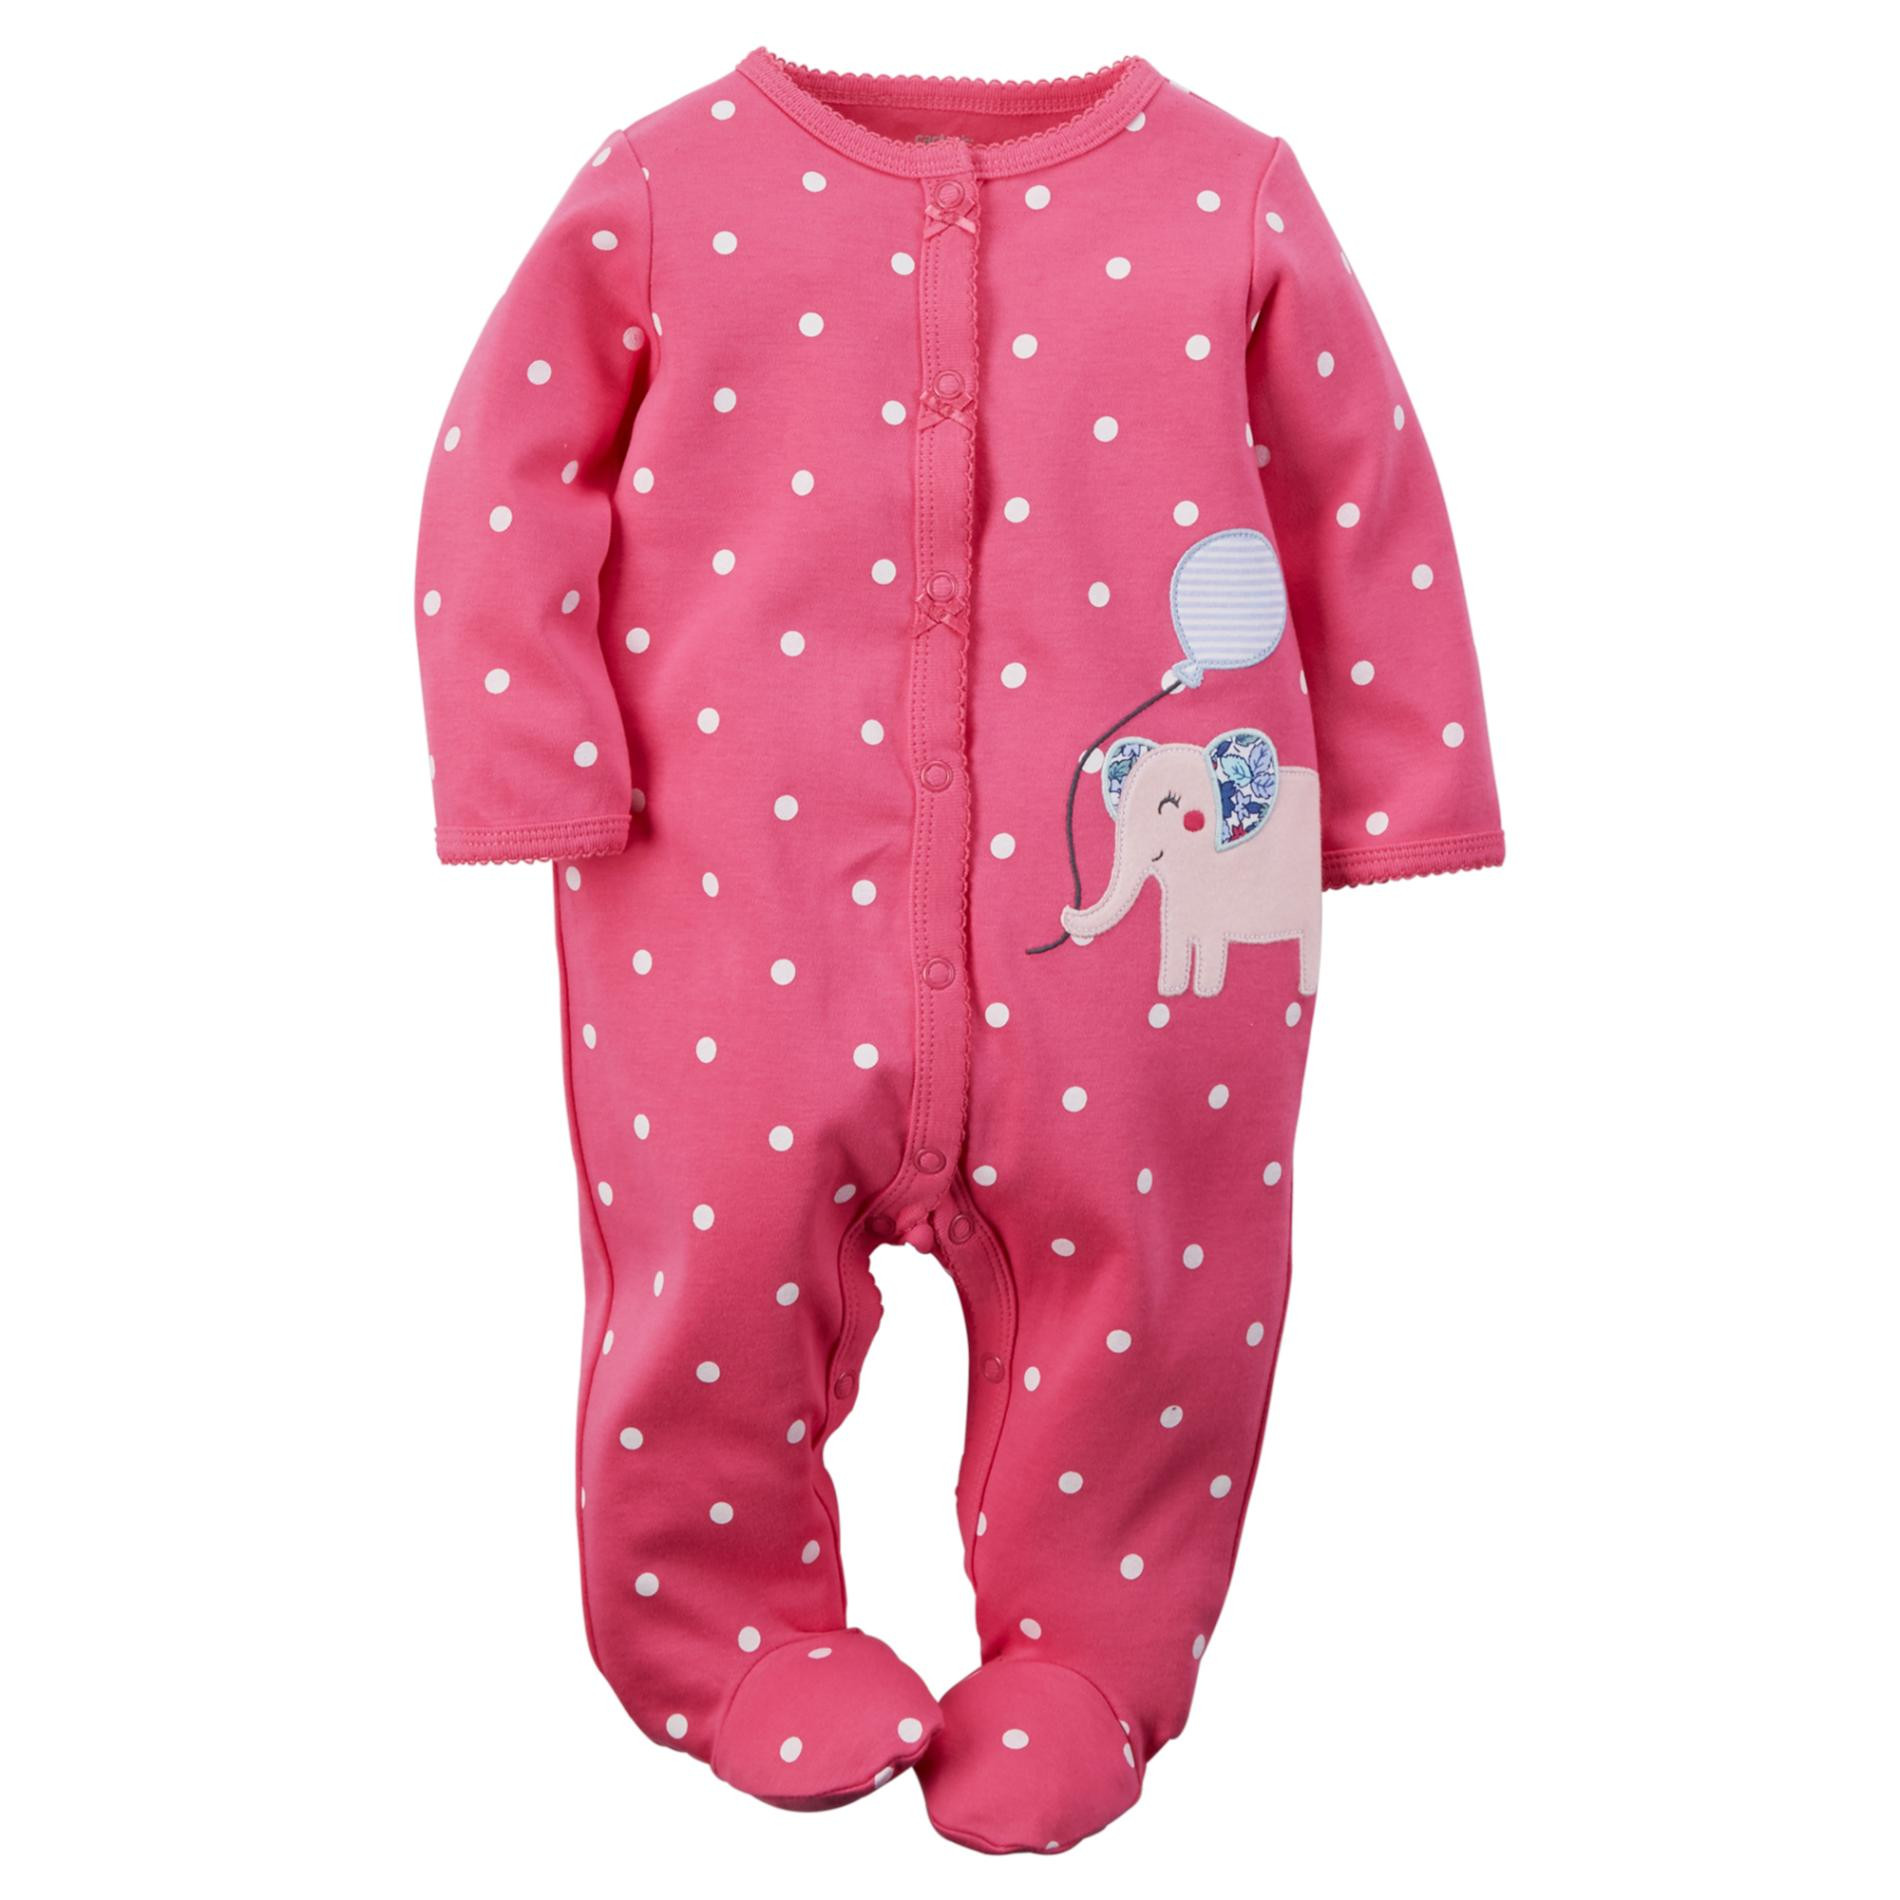 Baby Footed Pajamas Inspirational Carters Baby Model Of Amazing 42 Pictures Baby Footed Pajamas